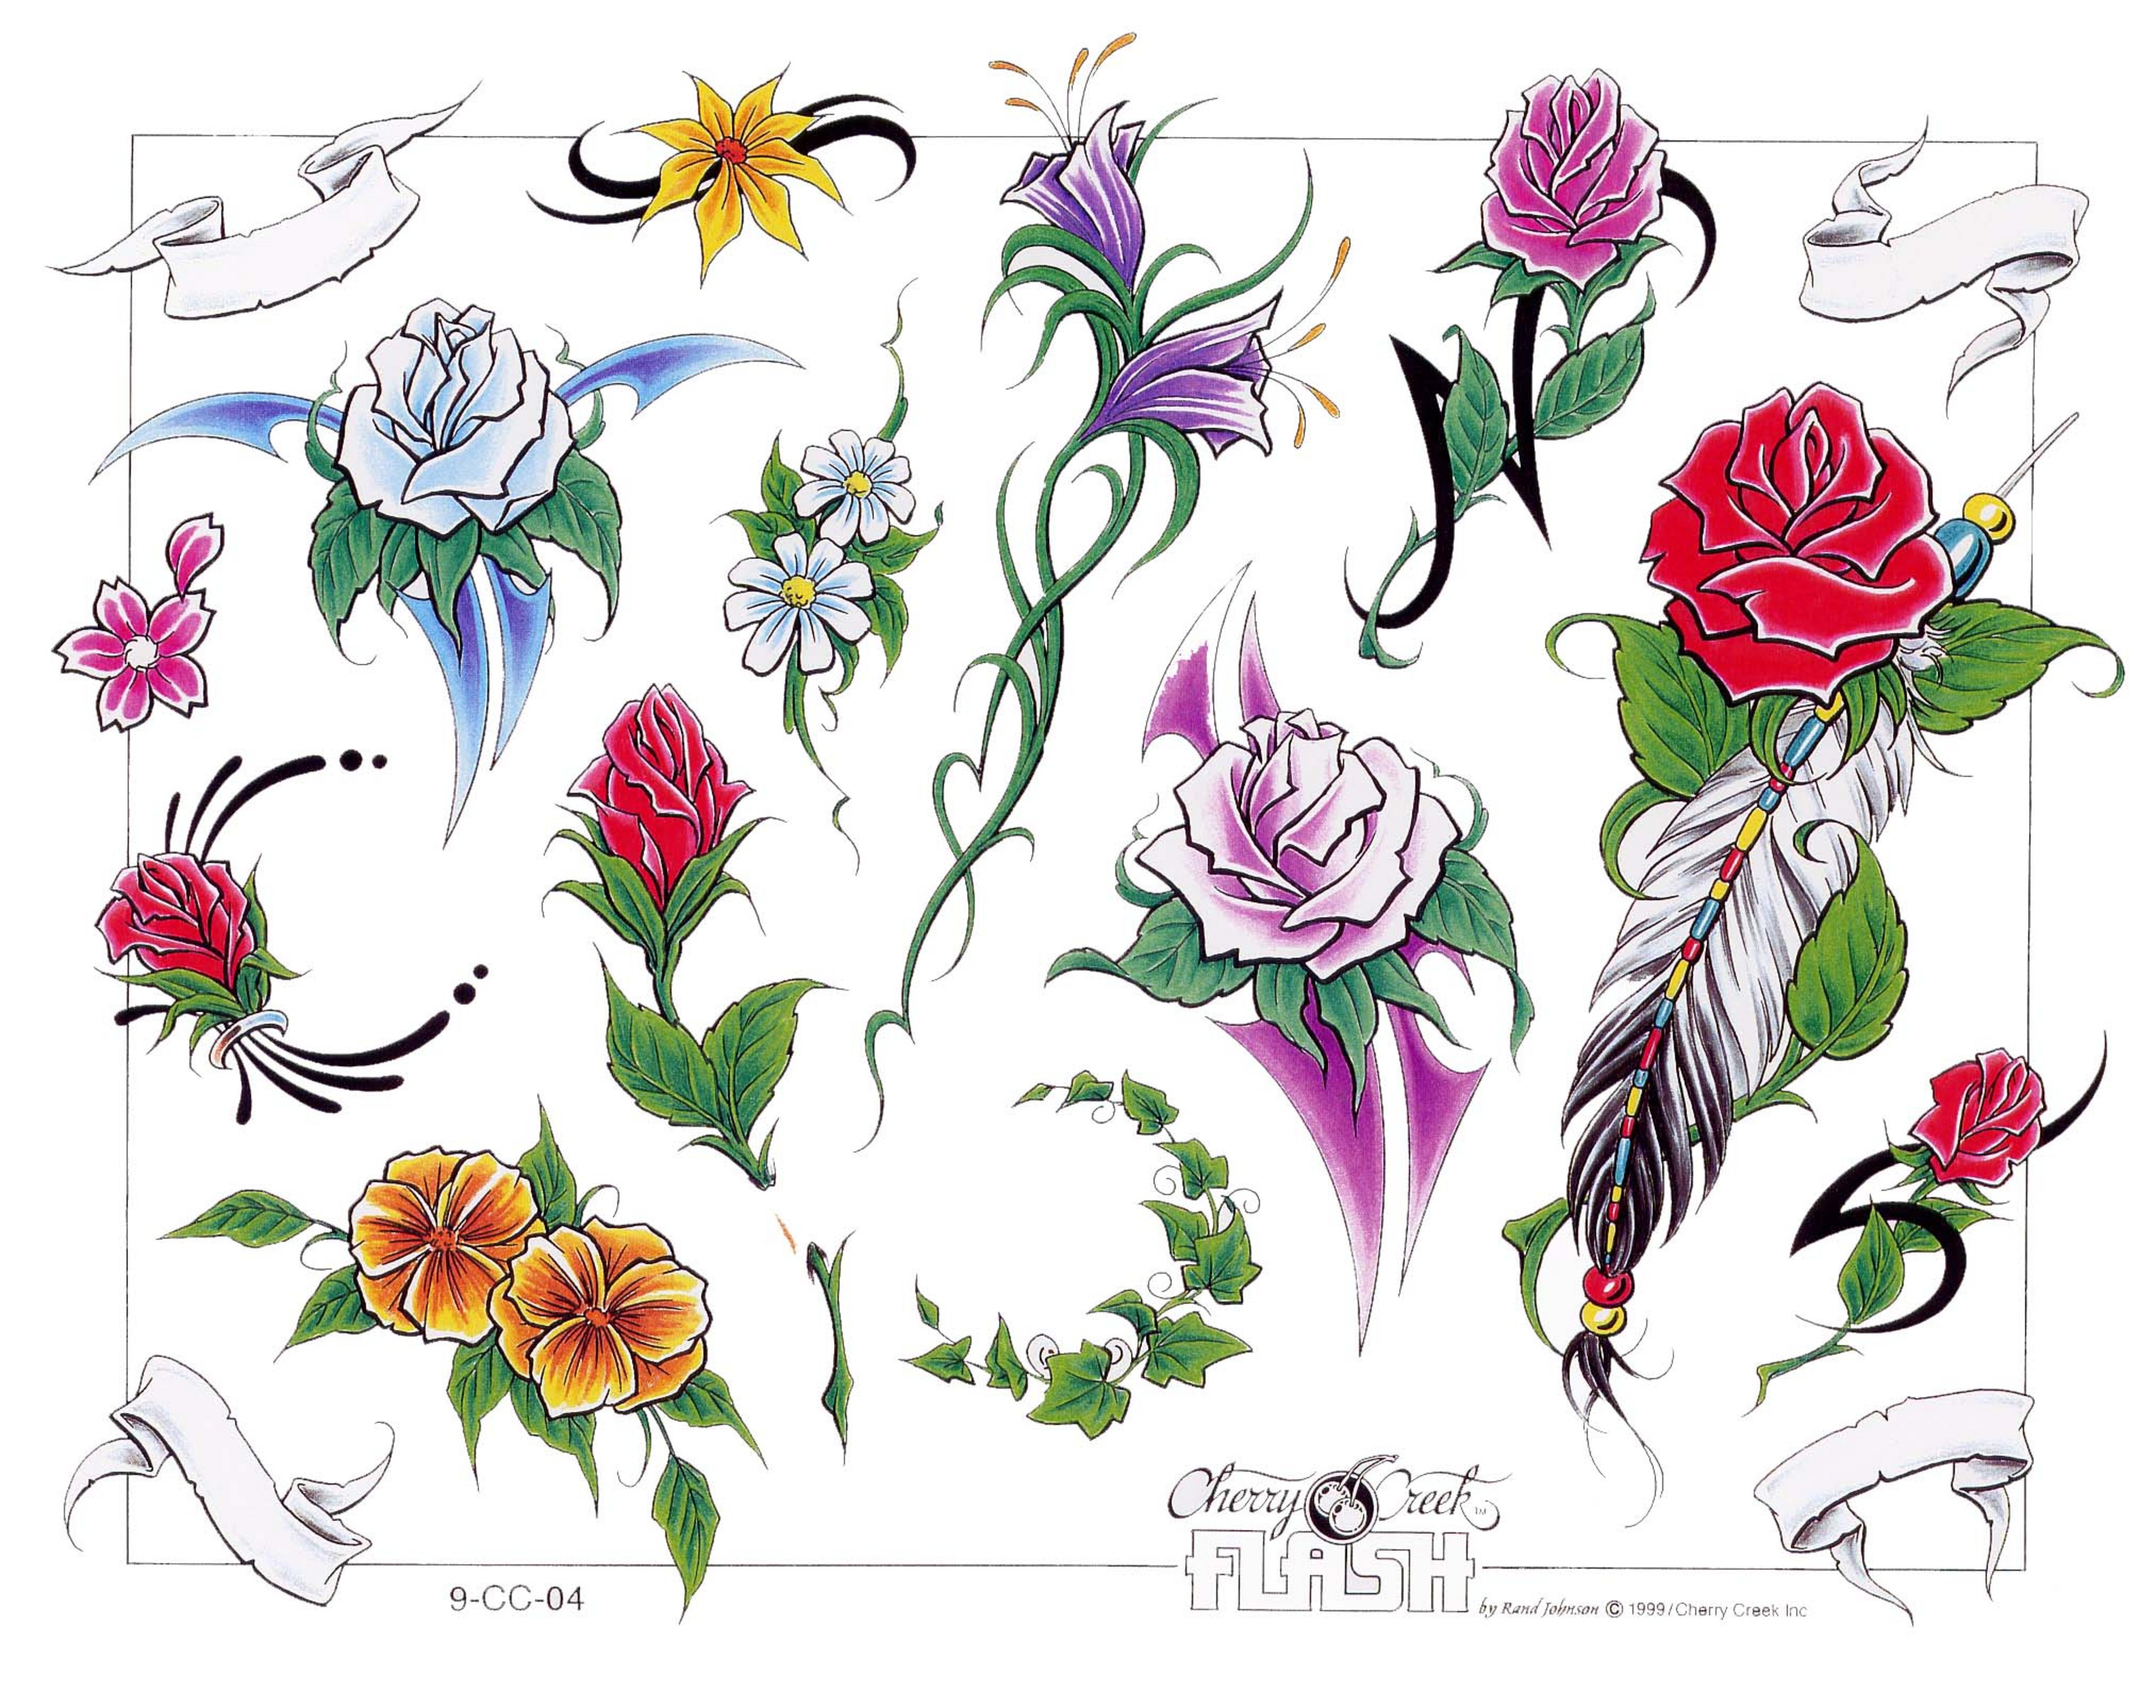 Free Rose Tattoos Designs - All images to free leo sign tattoo design